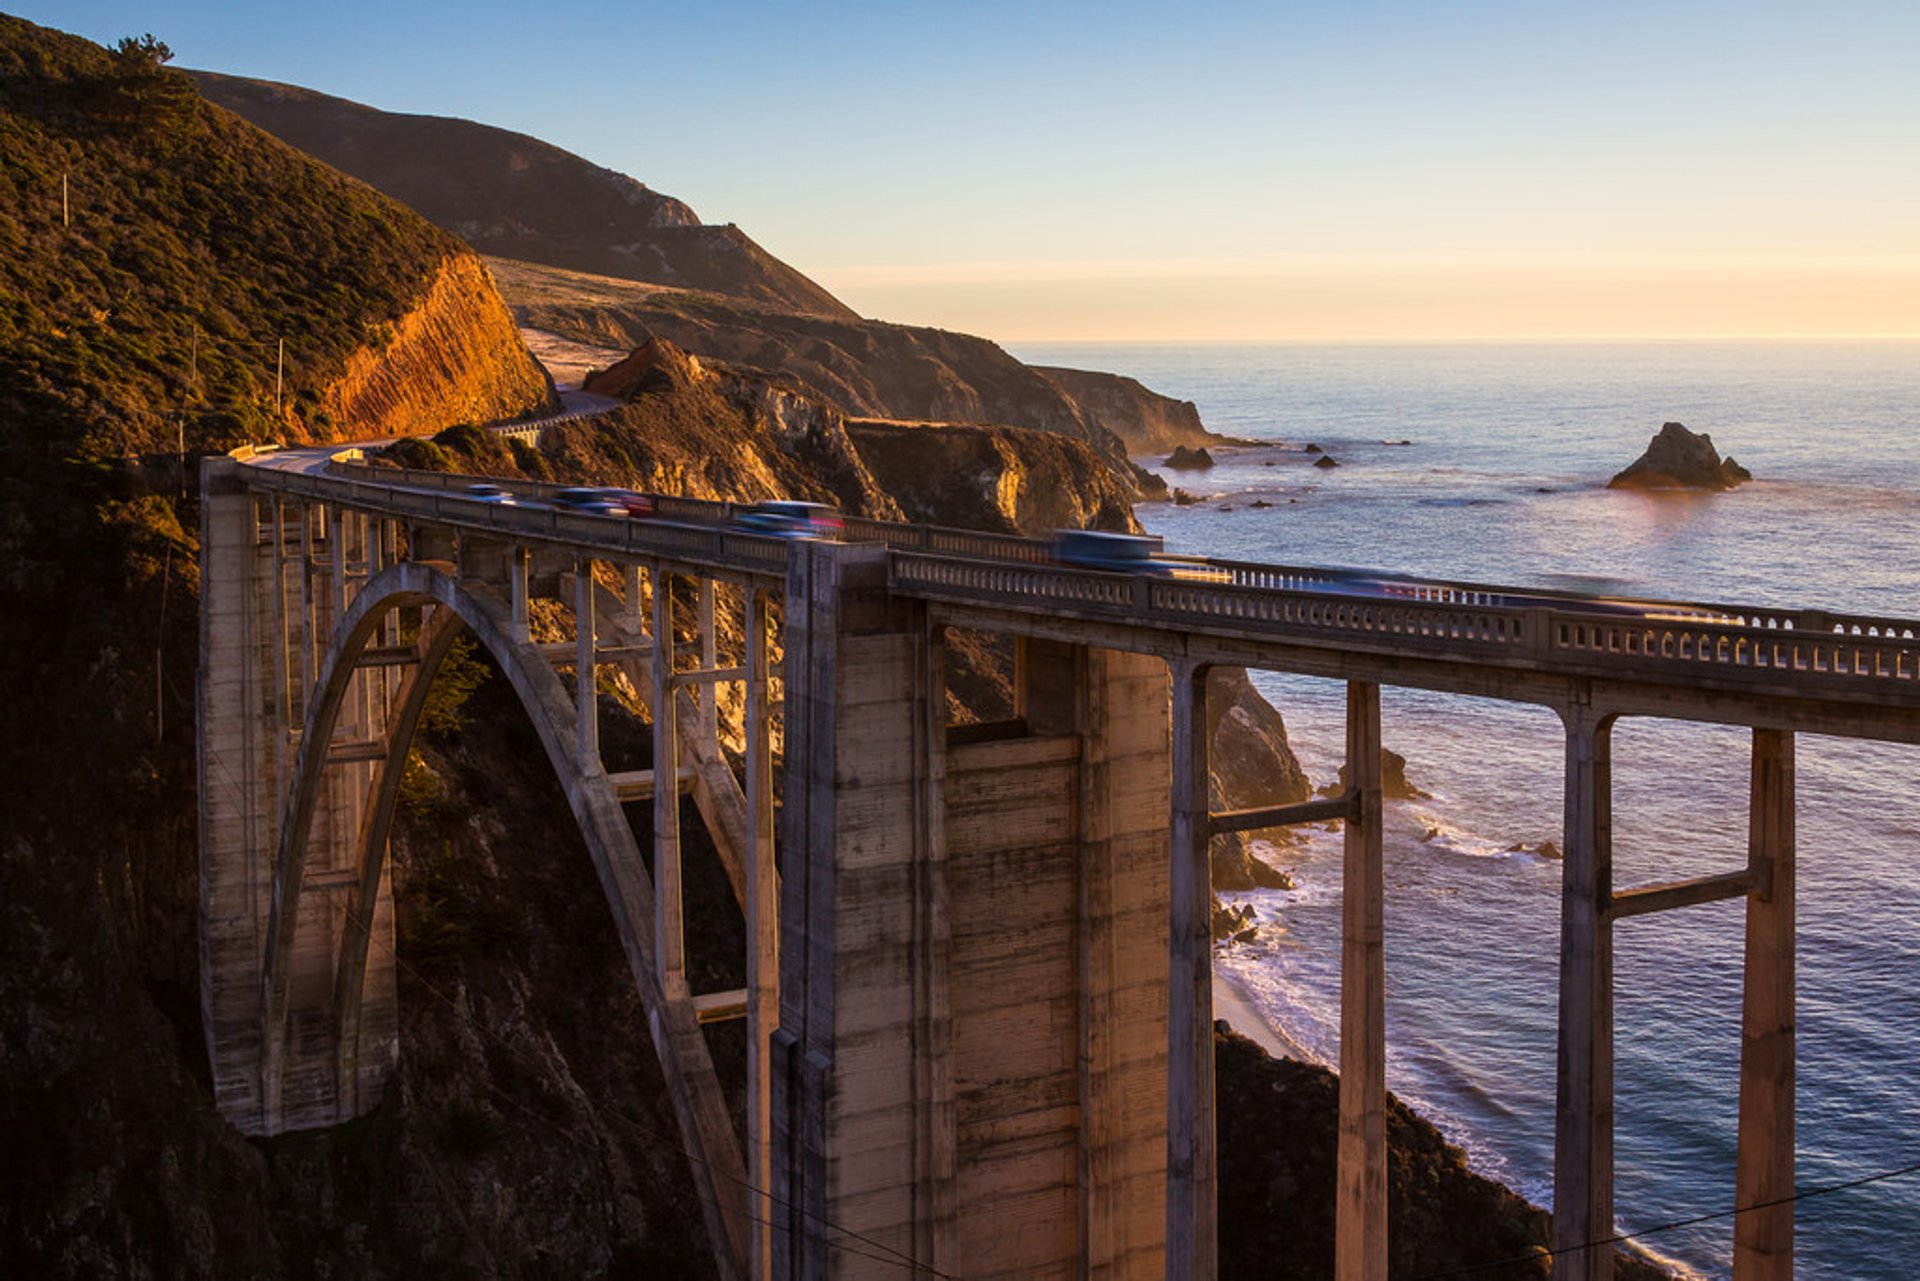 The Bixby Creek Bridge